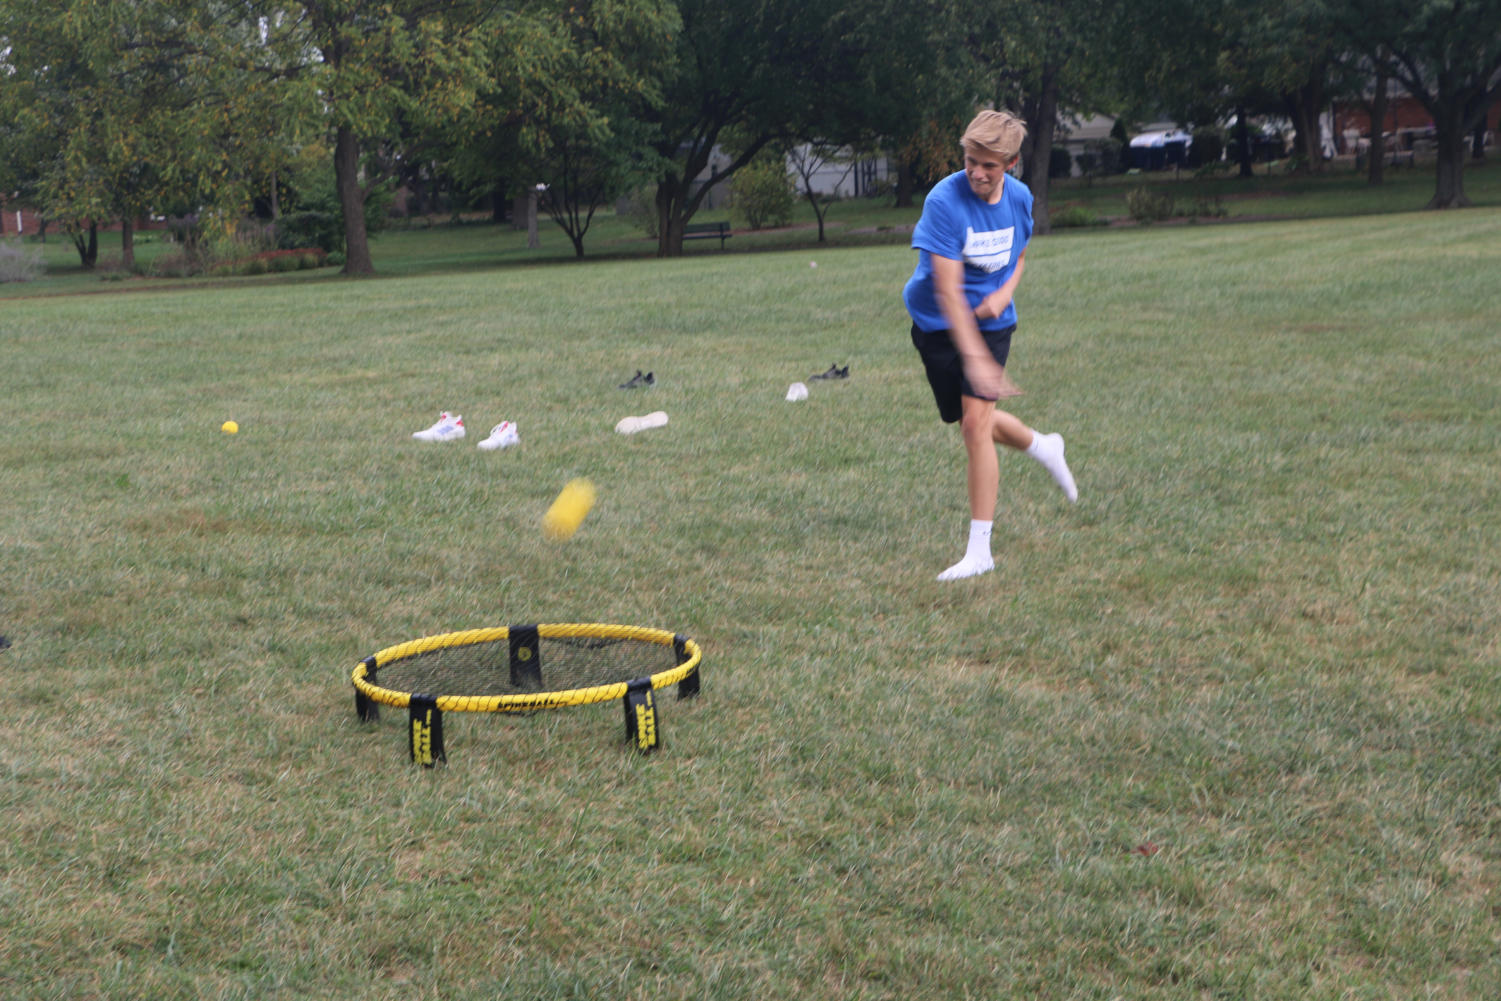 """POWER SLAM: Andrew """"Hudson"""" Alden, Spikeball Club member and junior, pounds a spikeball at the roundnet during a game. The unpredictable bounces off the net emphasize the importance of quick reflexes and anticipation."""